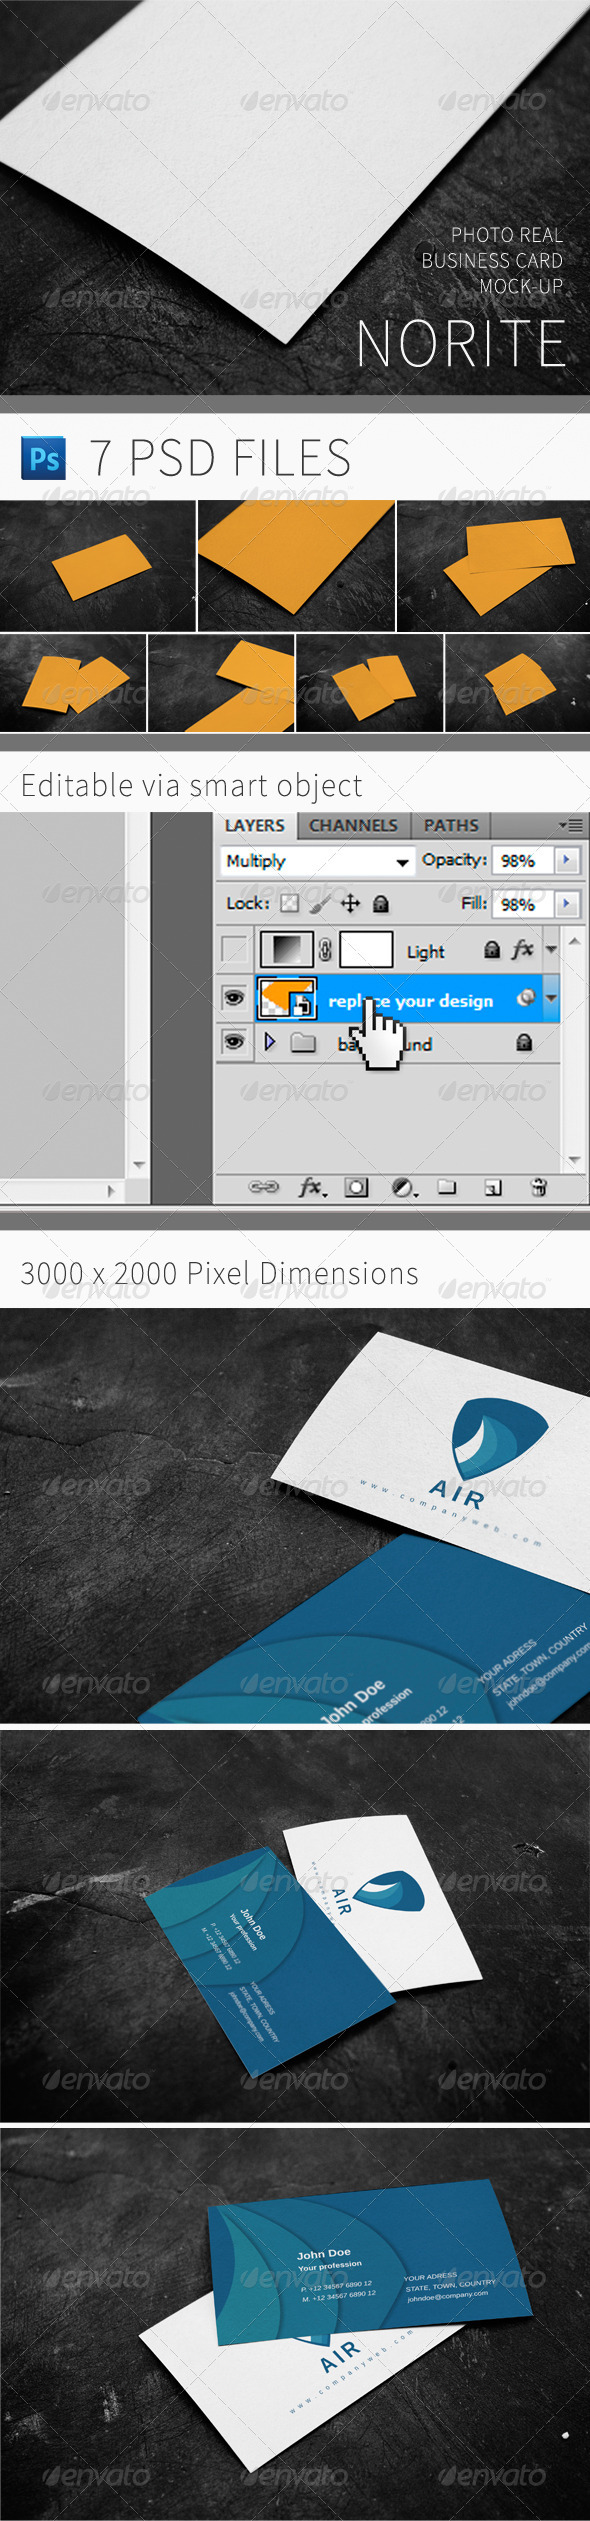 GraphicRiver Norite Photo Real Business Card Mock-up 3579062